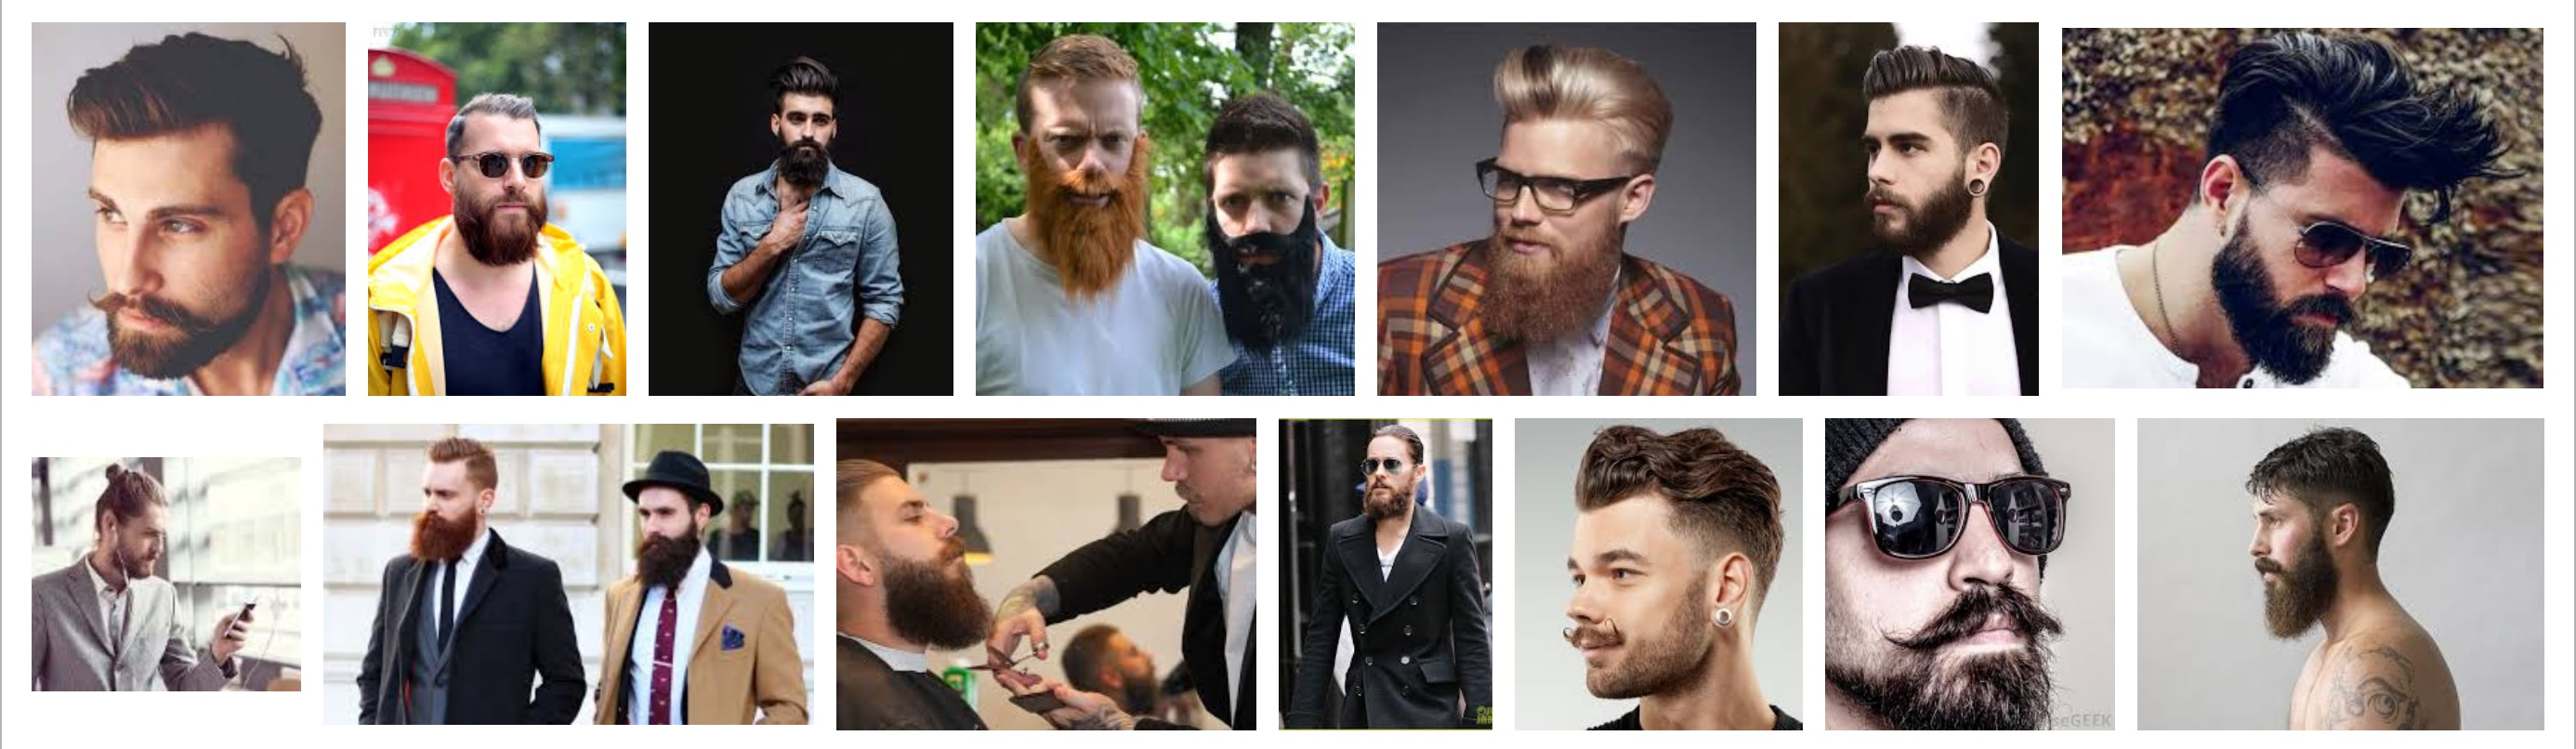 Google-search-hipster-beard